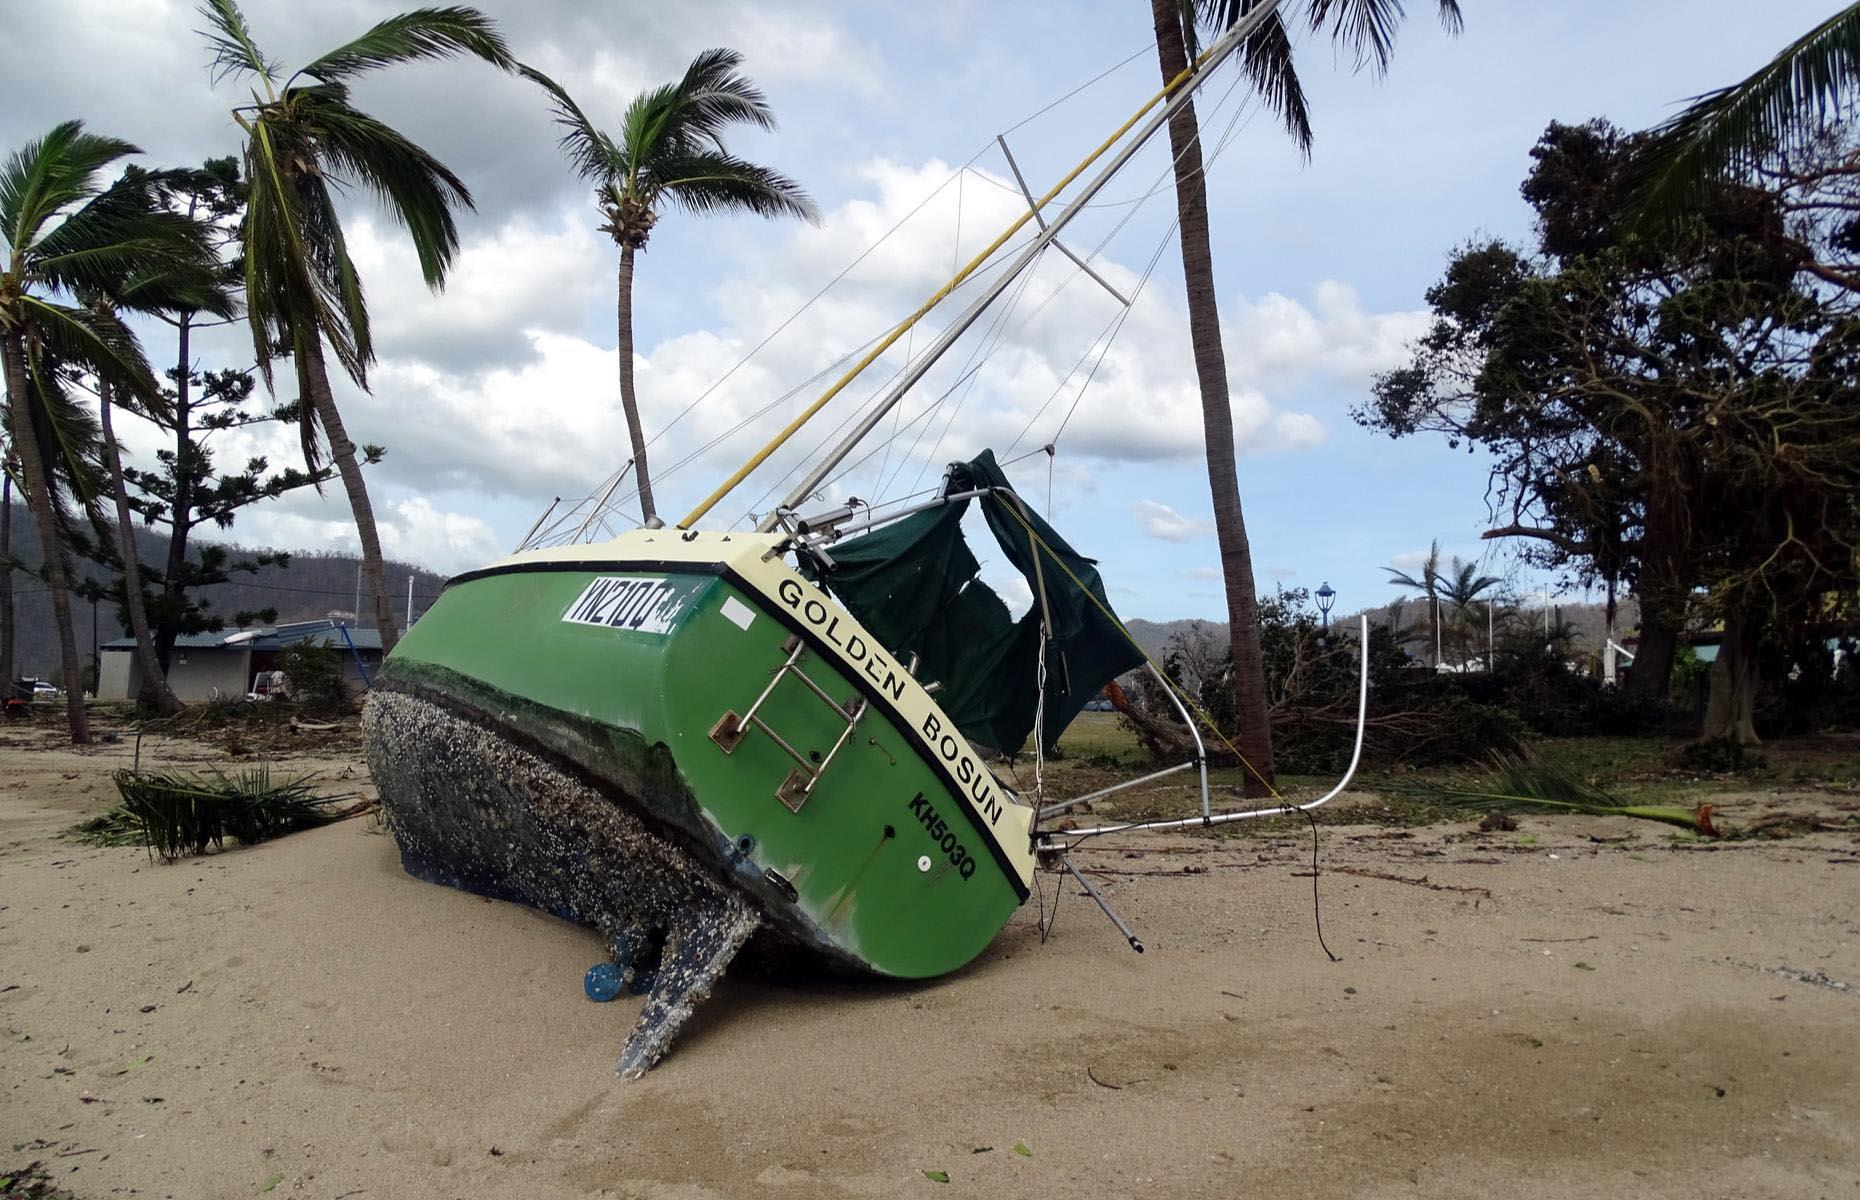 Slide 25 of 33: Cyclone Debbie caused damage to property, unleashing boats from their moorings and smashing them on rocks before they were washed ashore. Huge trees and door frames were also lifted and flung across beaches in the intense winds.